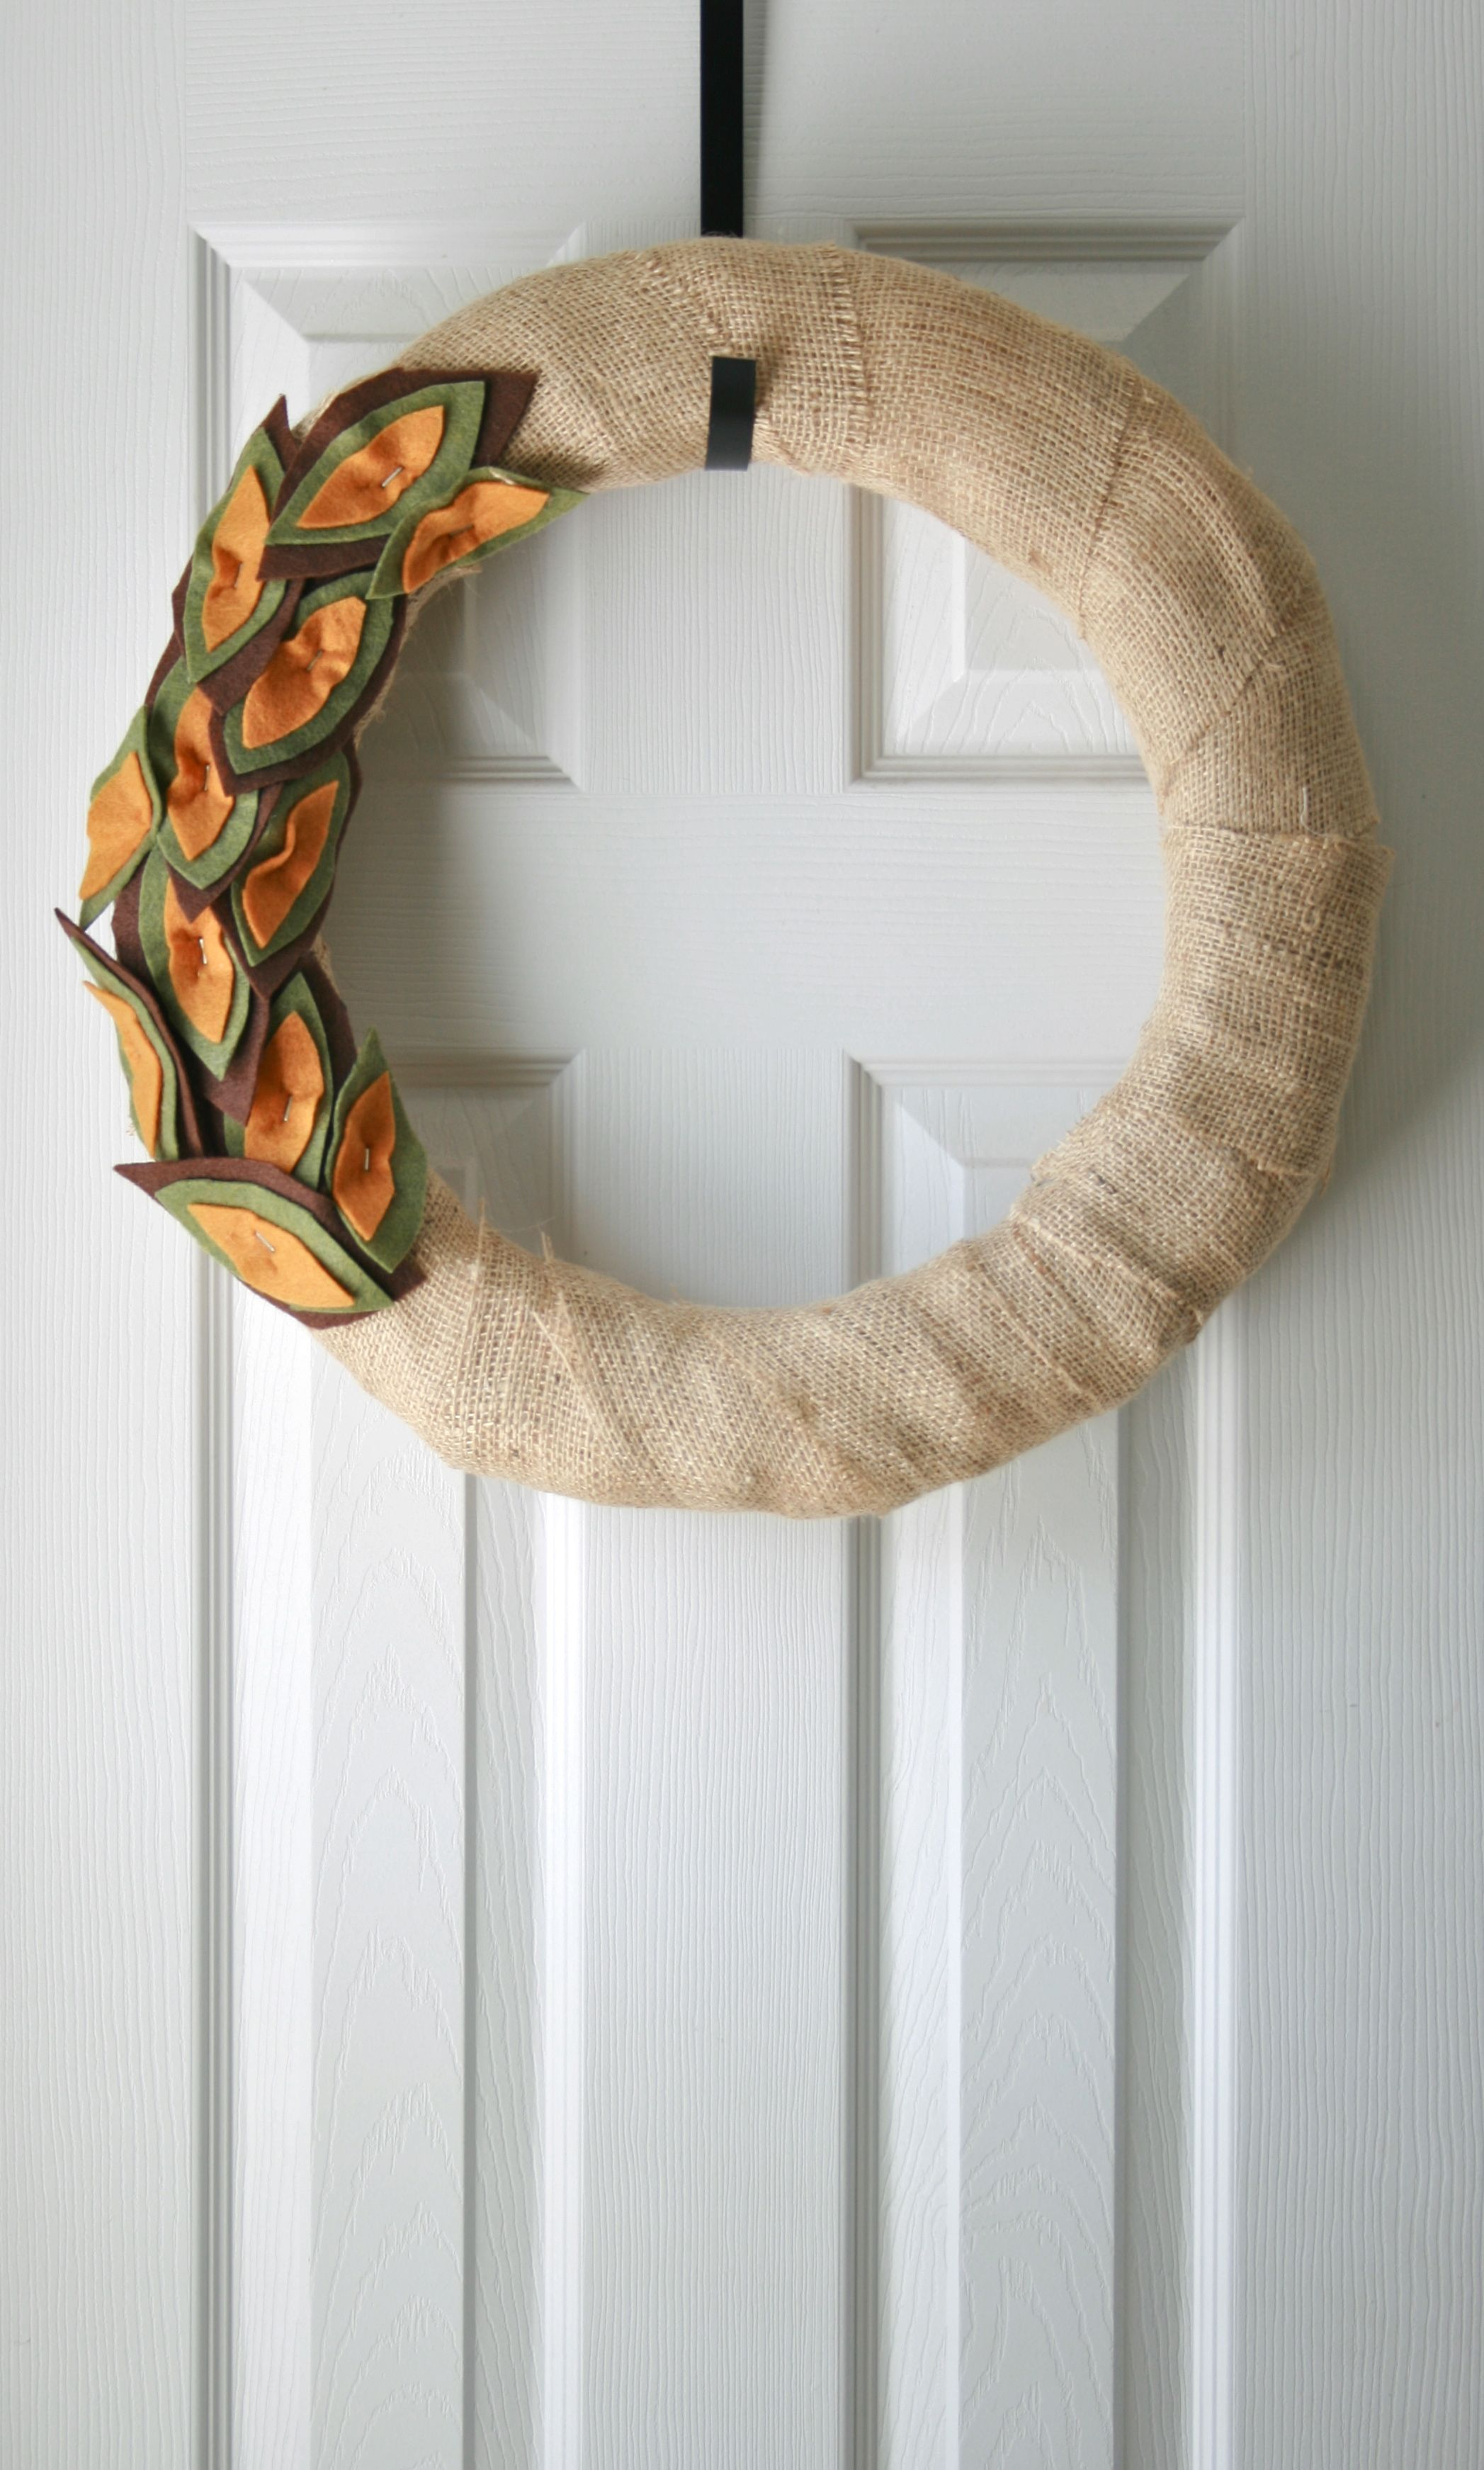 img 2196 burlap and felt autumn wreath {a tutorial}